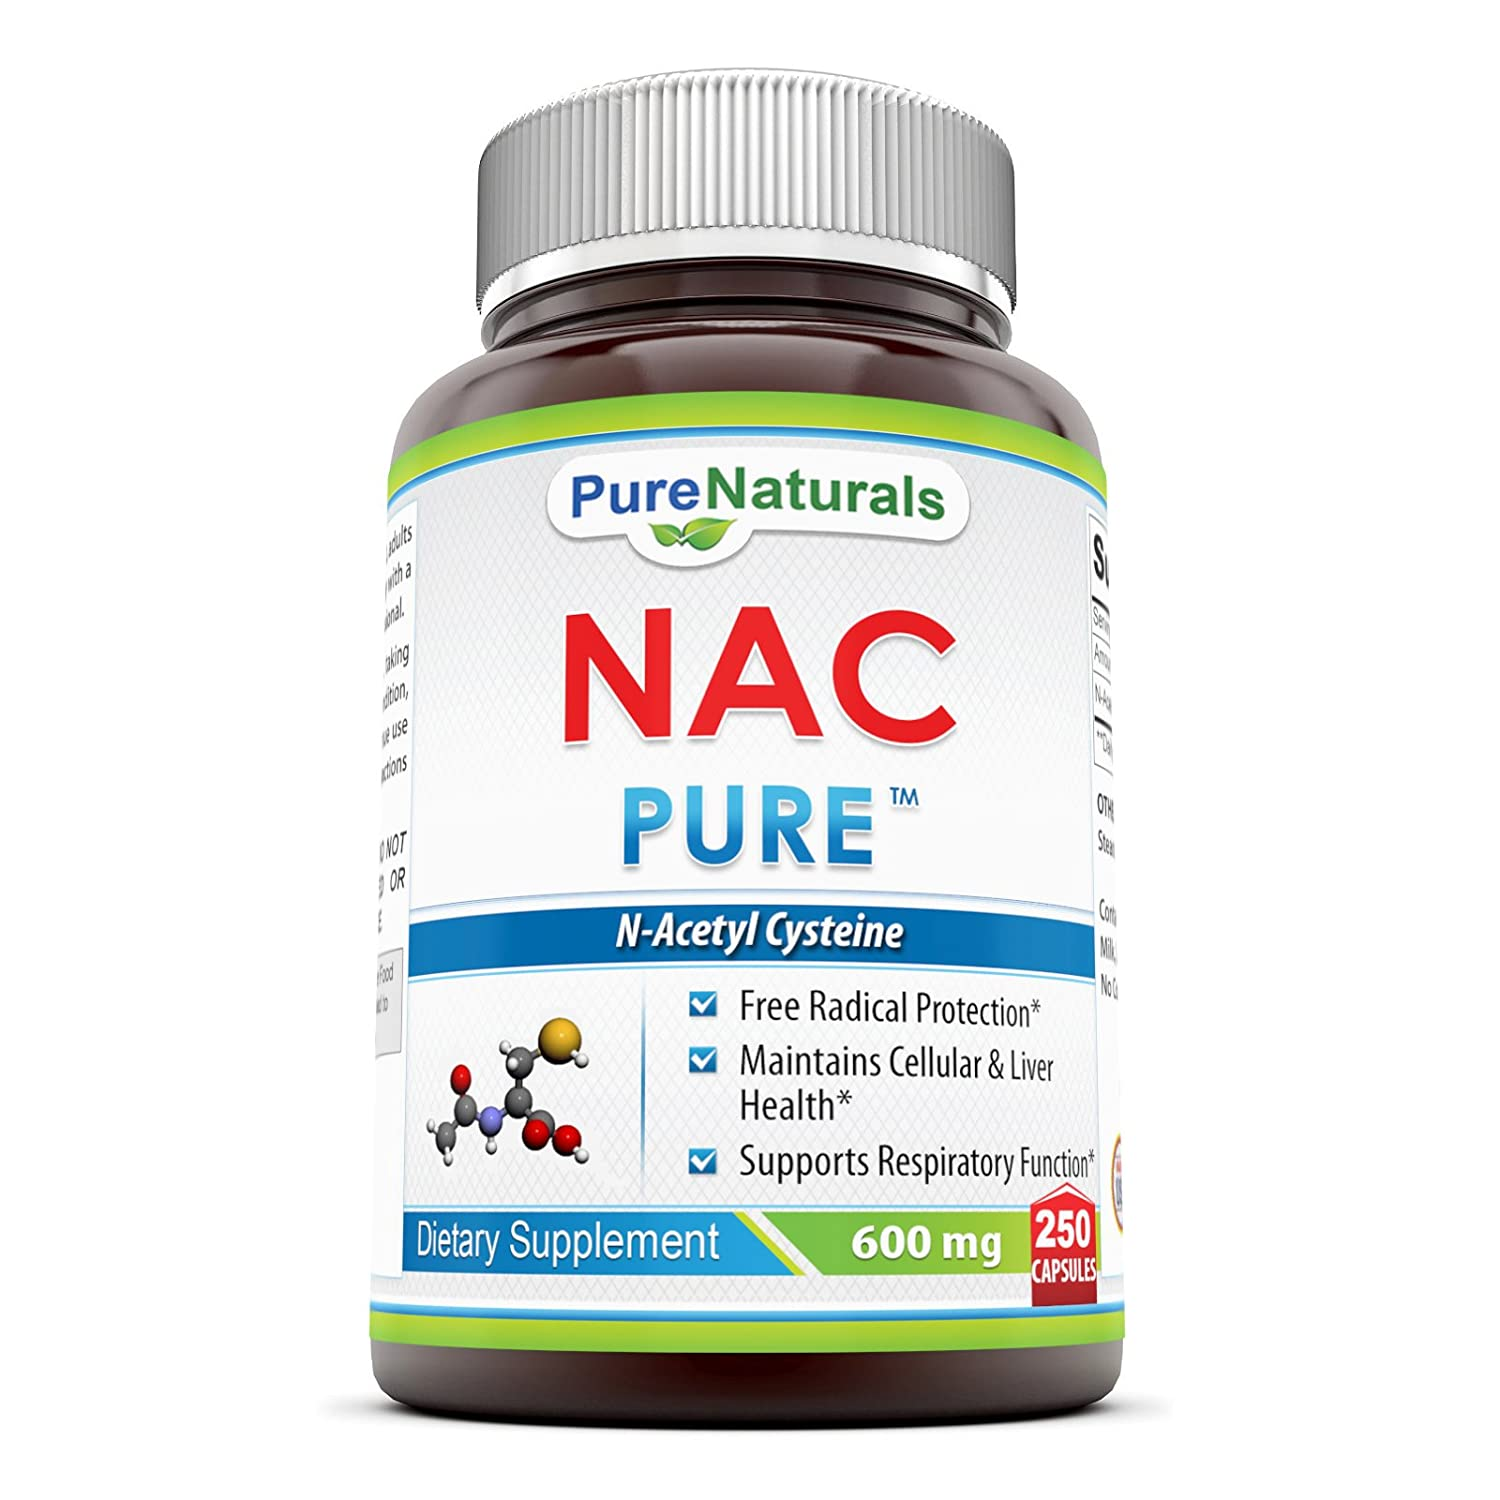 Pure Naturals N-Acetyl Cysteine Capsules, 600 Mg, 250 Capsules- Free Radical Protection* Maintains Cellular & Liver Health* Supports Respiratory Function*